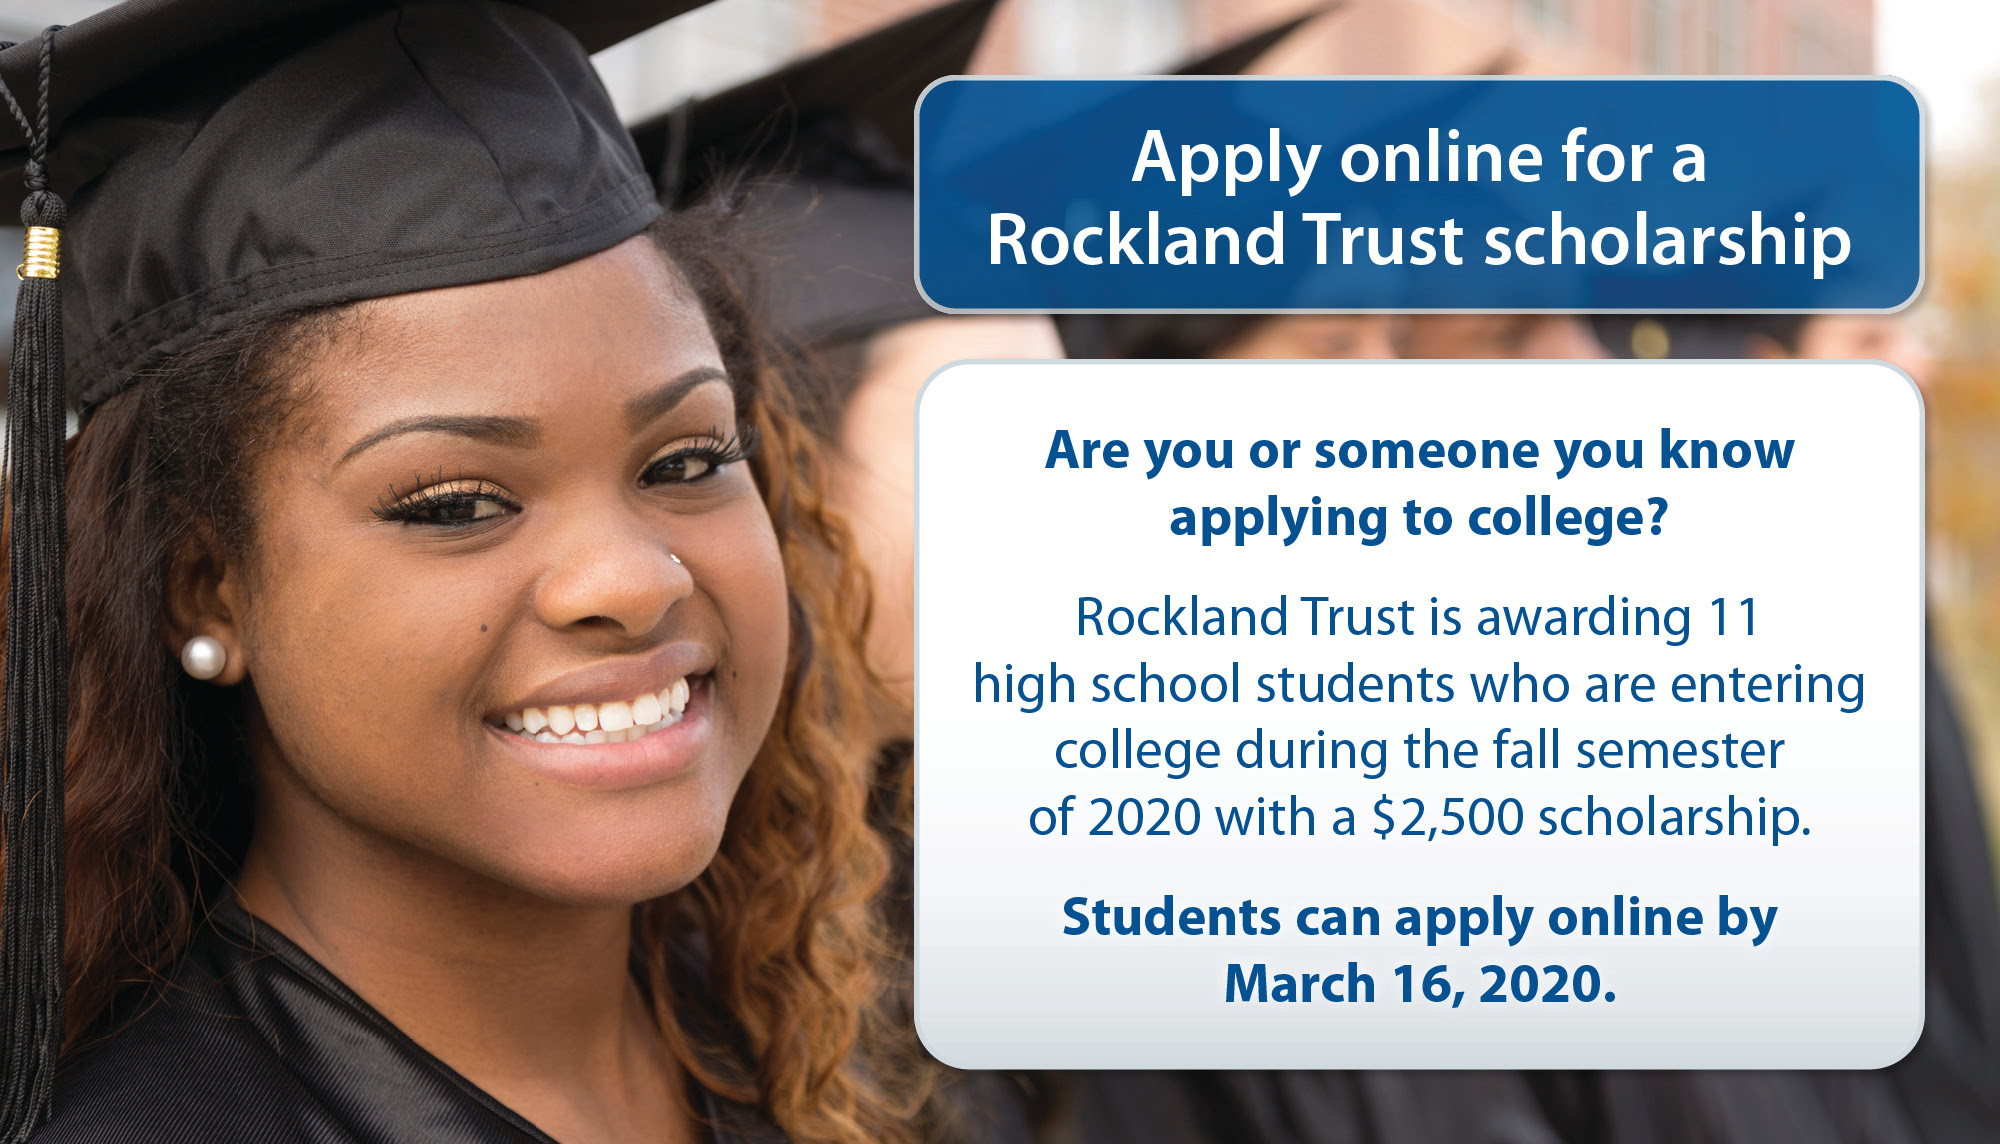 Rockland Trust - apply for a scholarship